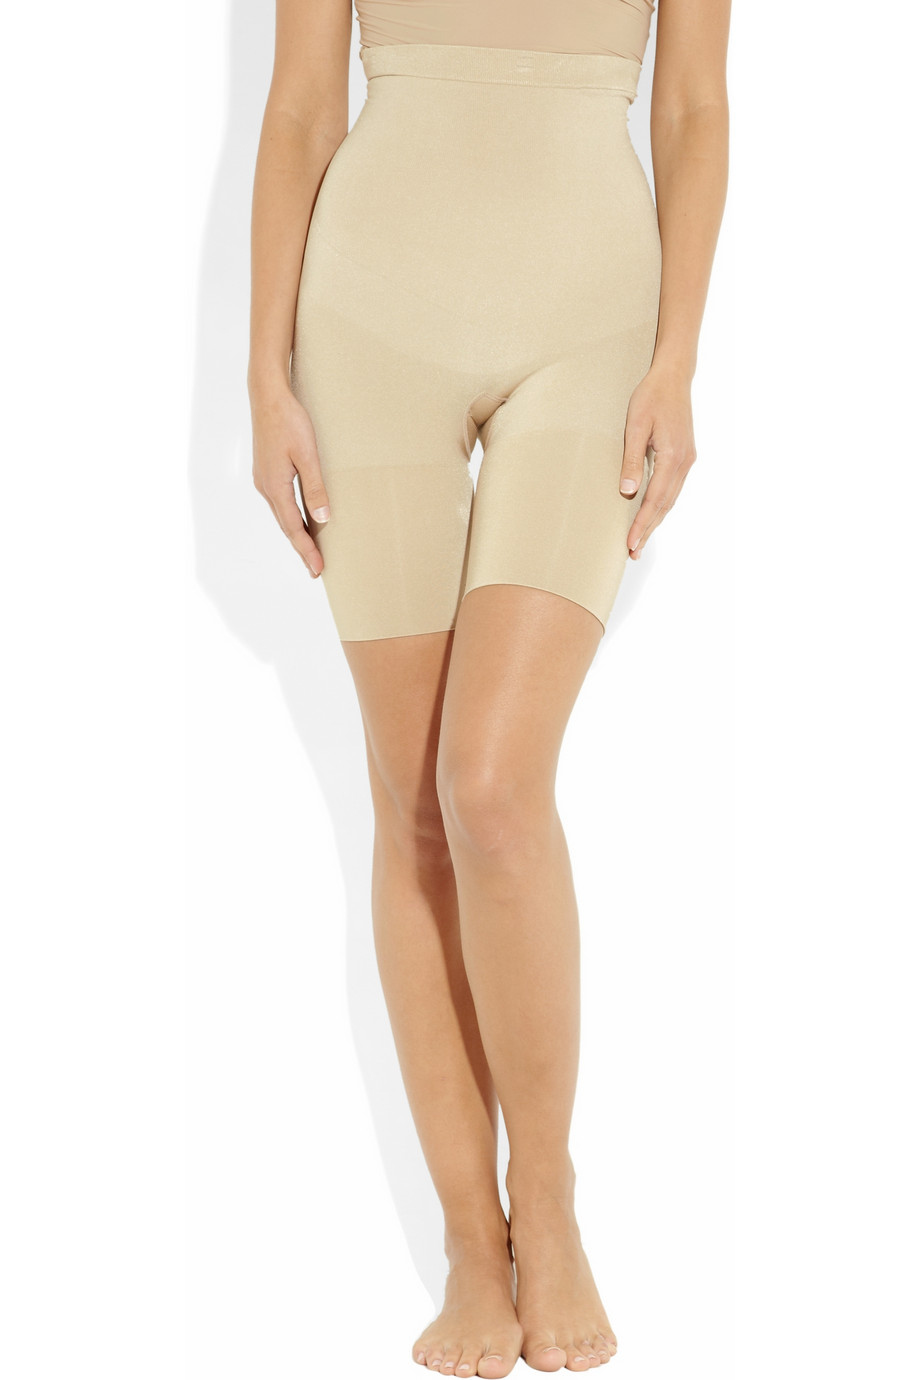 New Arrival Nude Skinny Butt Lift Britches Slimming Mid